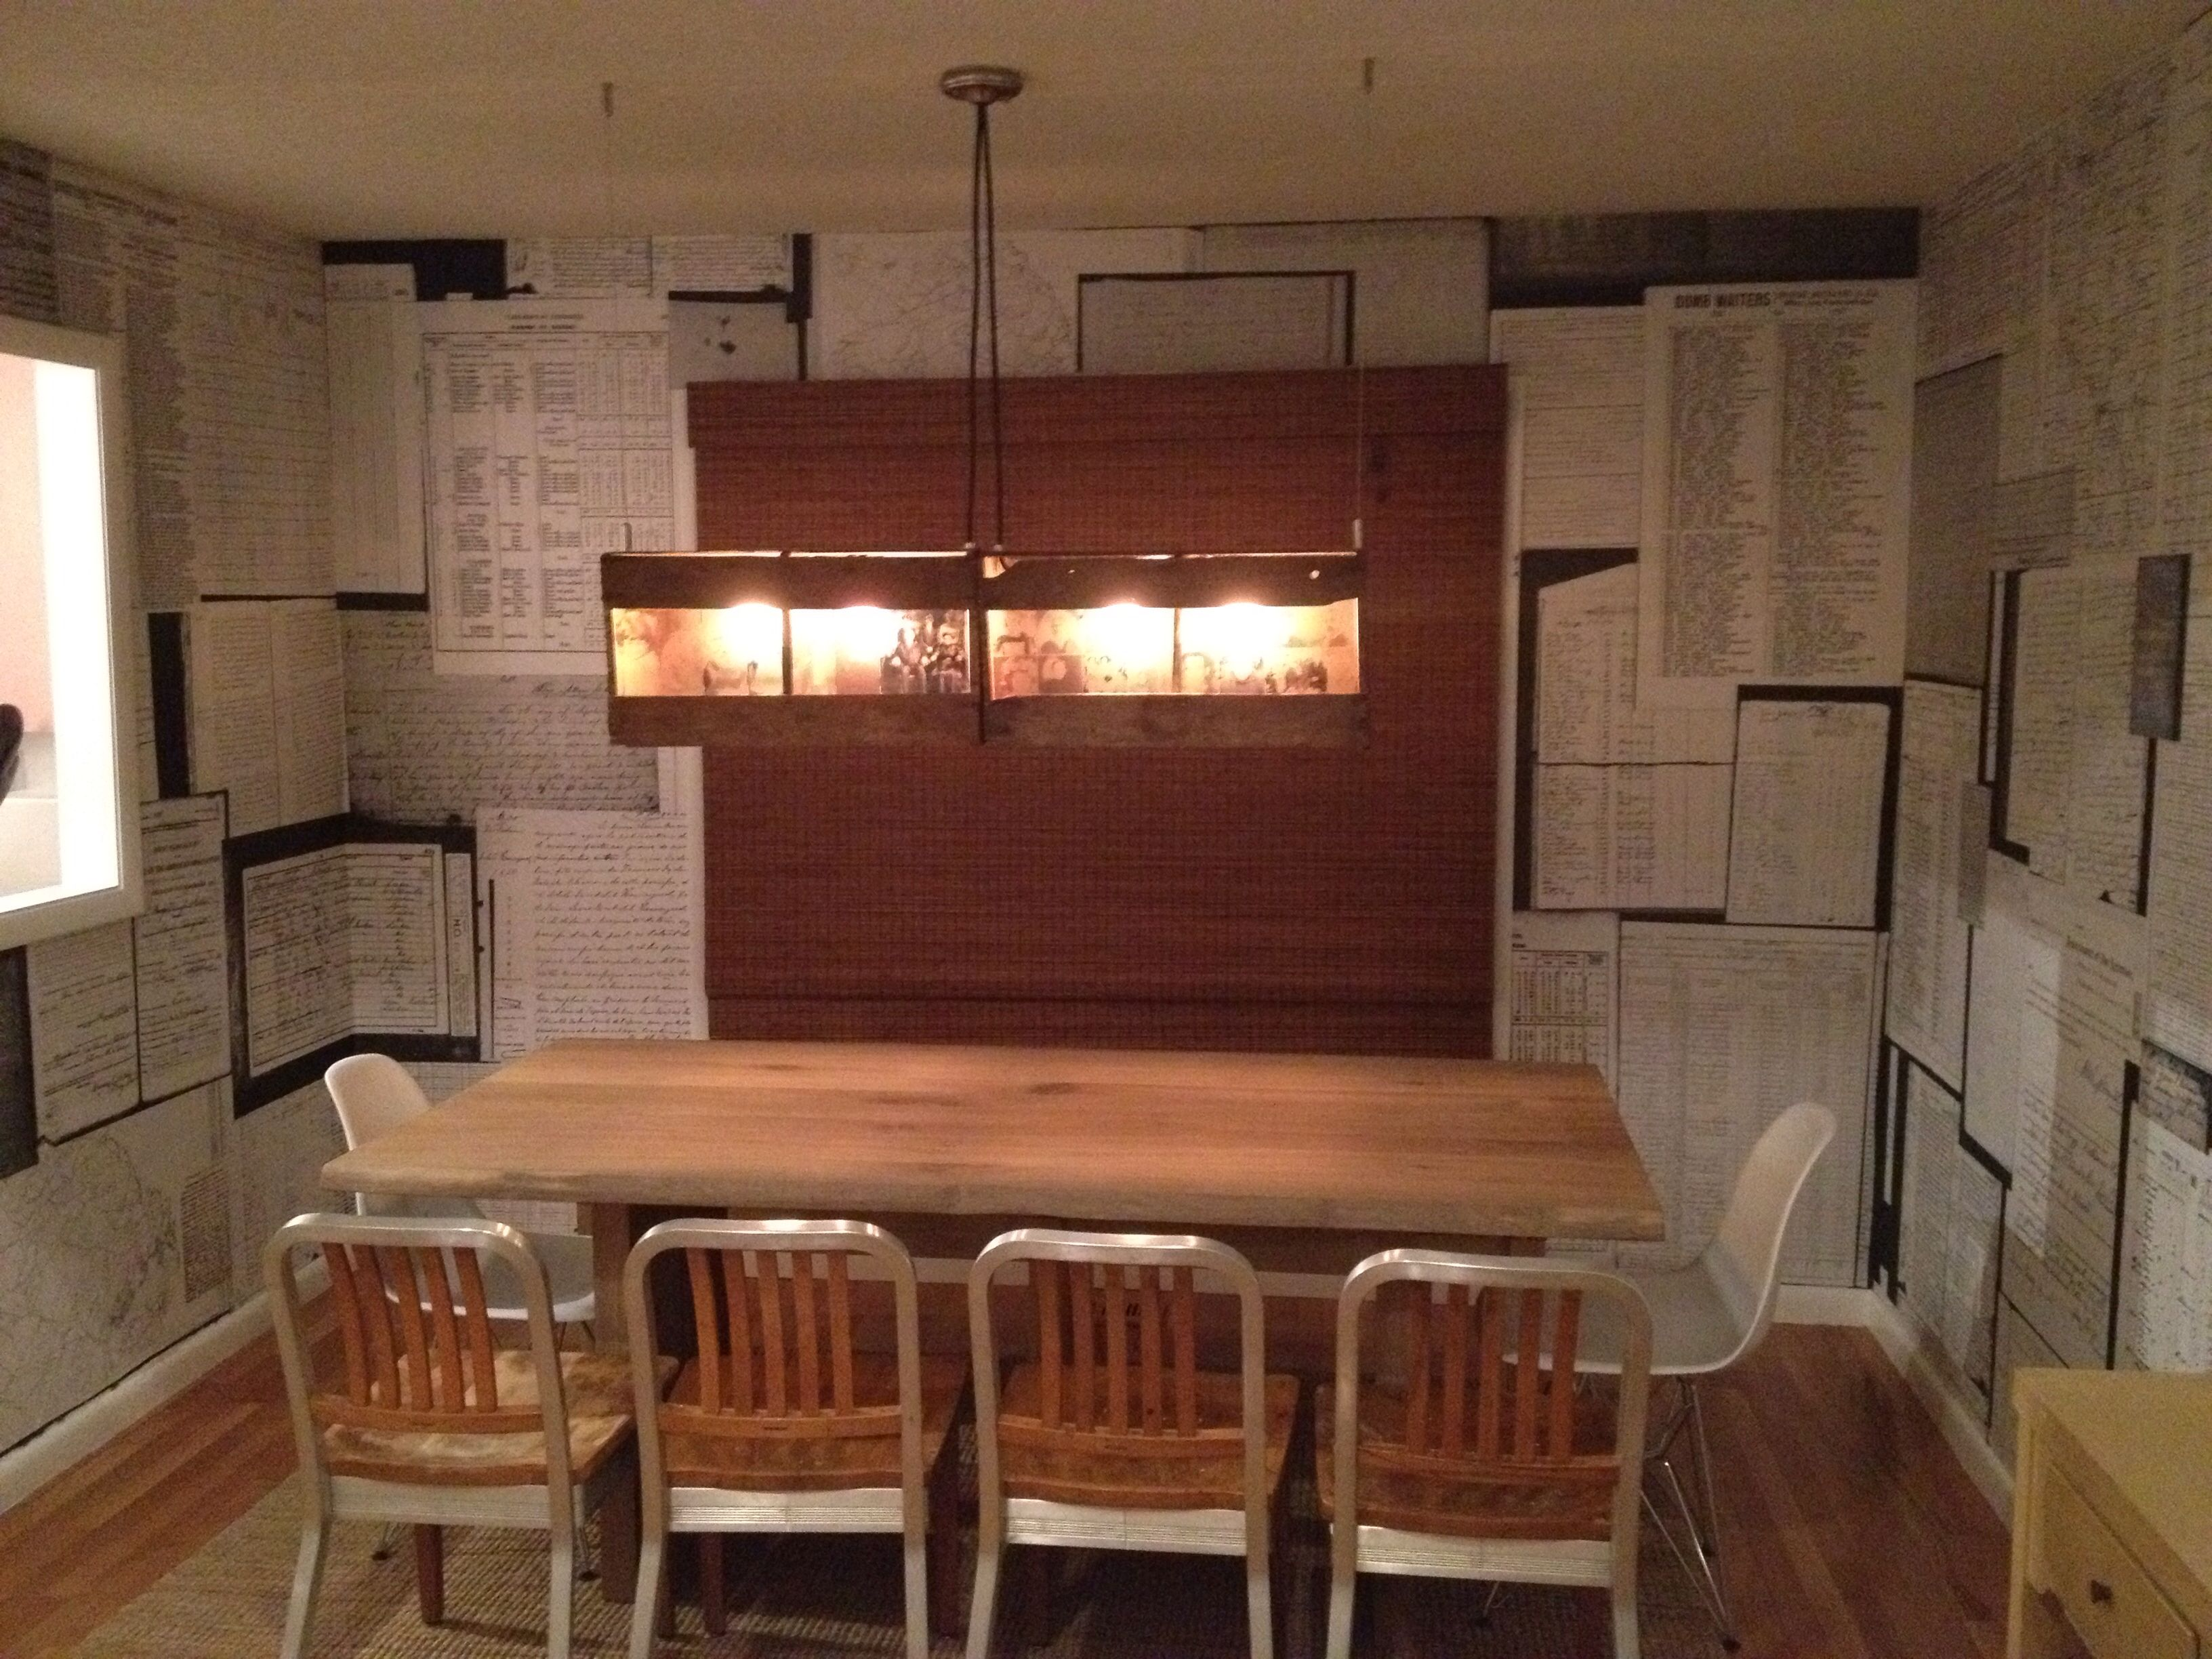 Dining Room With Ancestry Wallpaper Reclaimed Cranberry Crate Lighting Fixture Fracture Printed Ancestor Photo